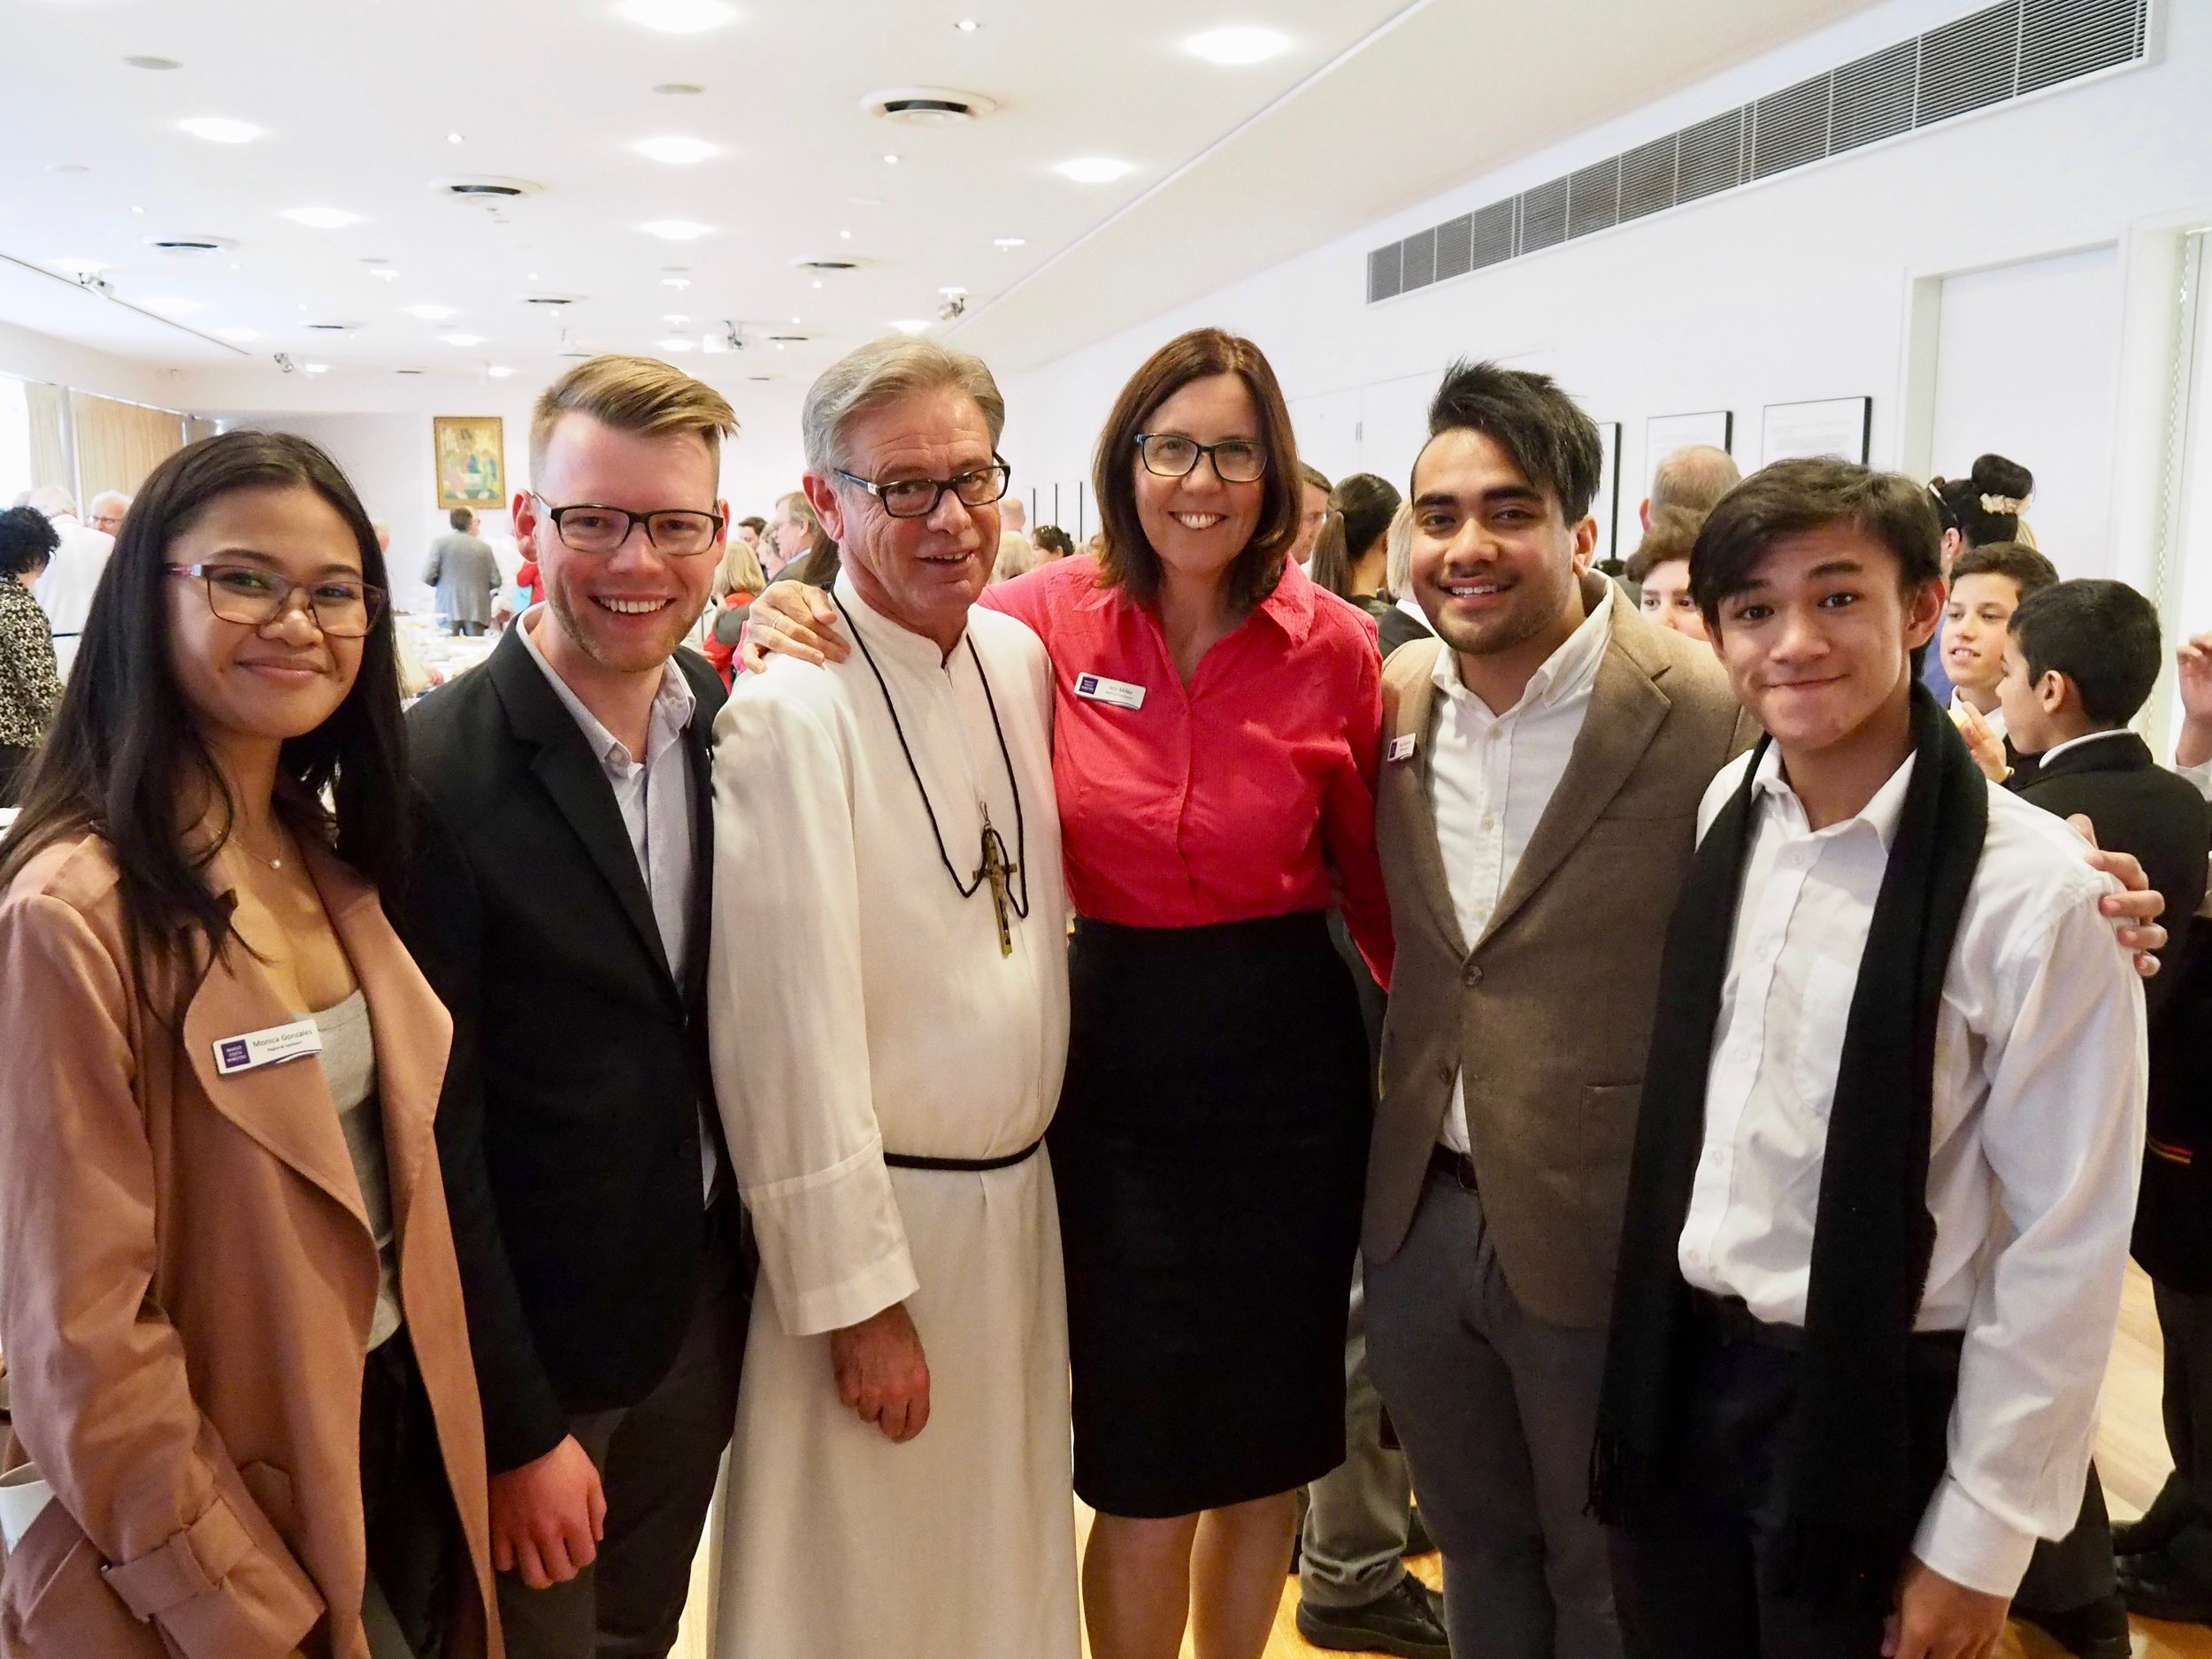 Bicentenary Mass Sydney 12 Aug 2017 Photos by Paul Harris 00154.jpg